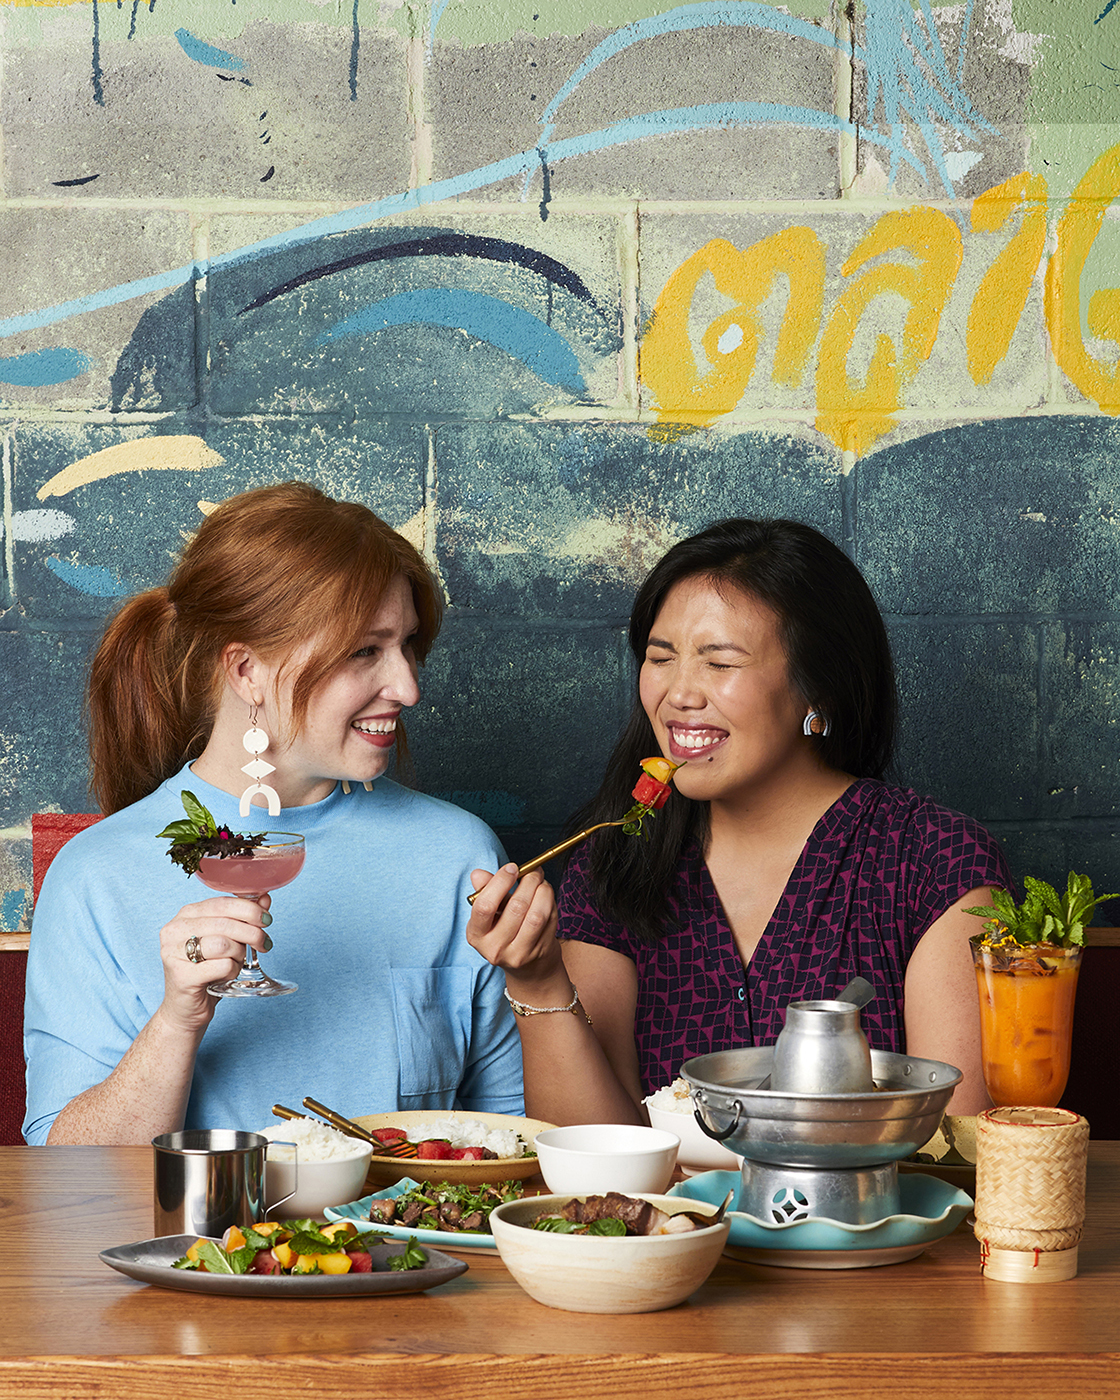 Two women enjoy drinks and food in front of mural at Talat Market for Atlanta magazine 13 best restaurants shot by Bailey Garrot